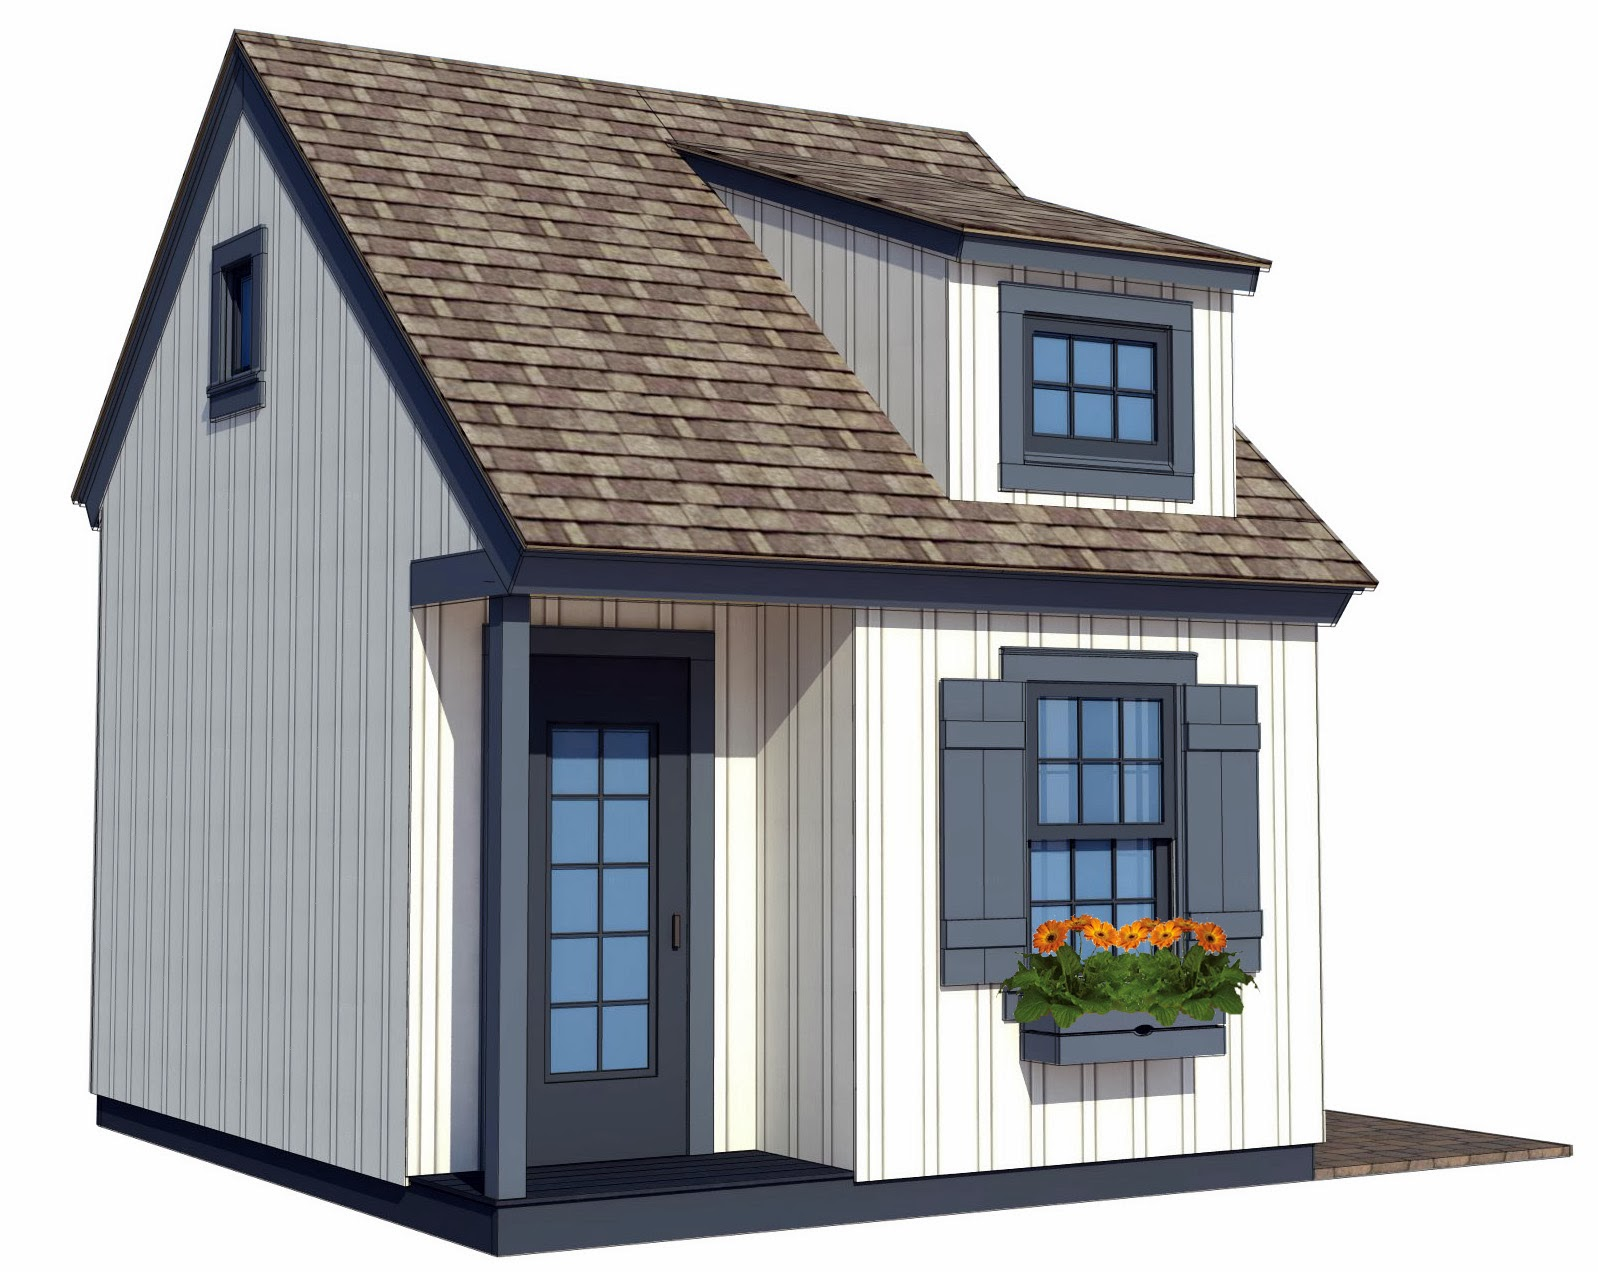 aplaceimagined traditional playhouse plans On playhouse patterns